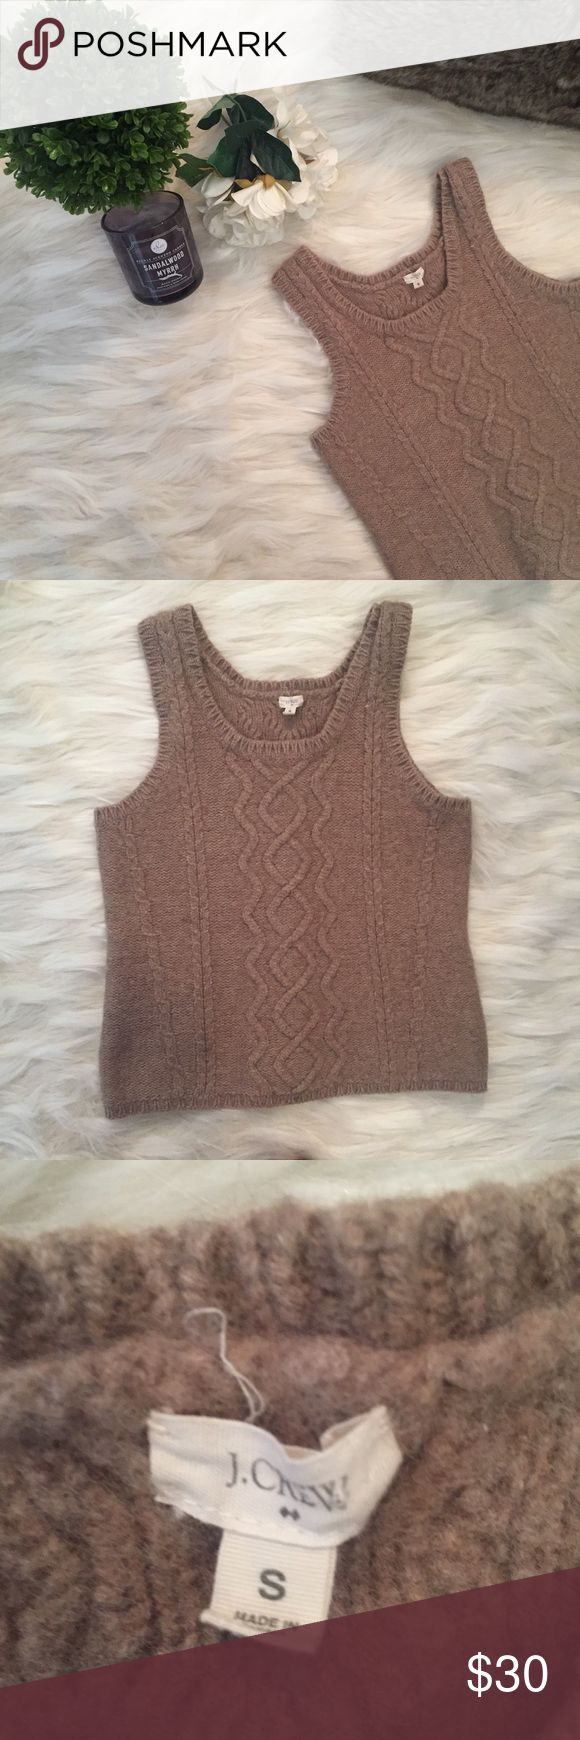 J Crew Sweater Vest J Crew Sleeveless sweater in tan color. Sweater has a braided detail going down the front and similar detail going down the middle of the sweater. The sweater is very thick and warm. The sweater is fitted but had some stretch to it. The sweater has a scoop neckline and fits true to size. J.Crew Factory Sweaters Crew & Scoop Necks